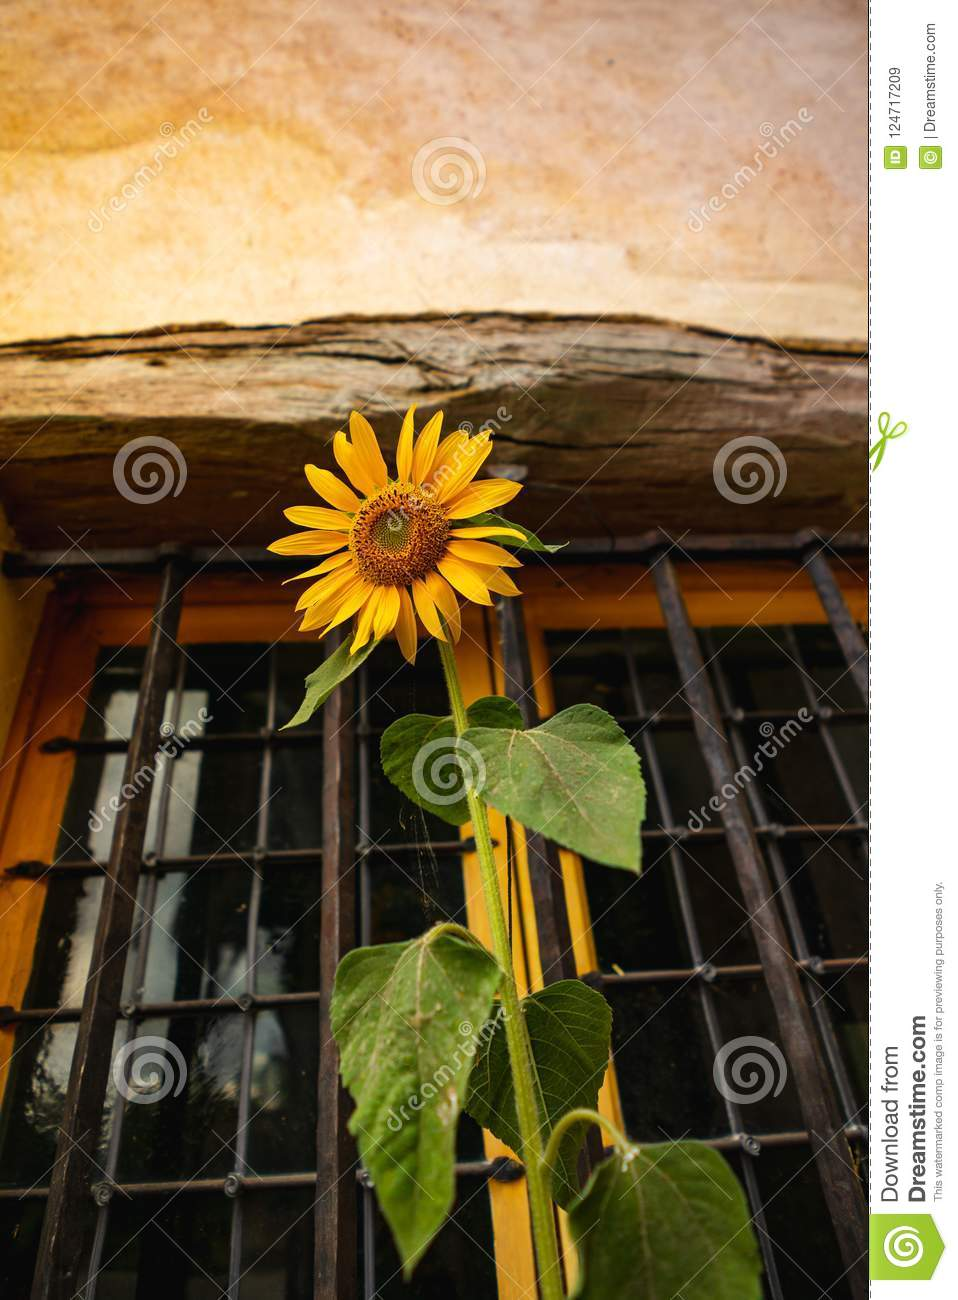 Sunflower flower on window